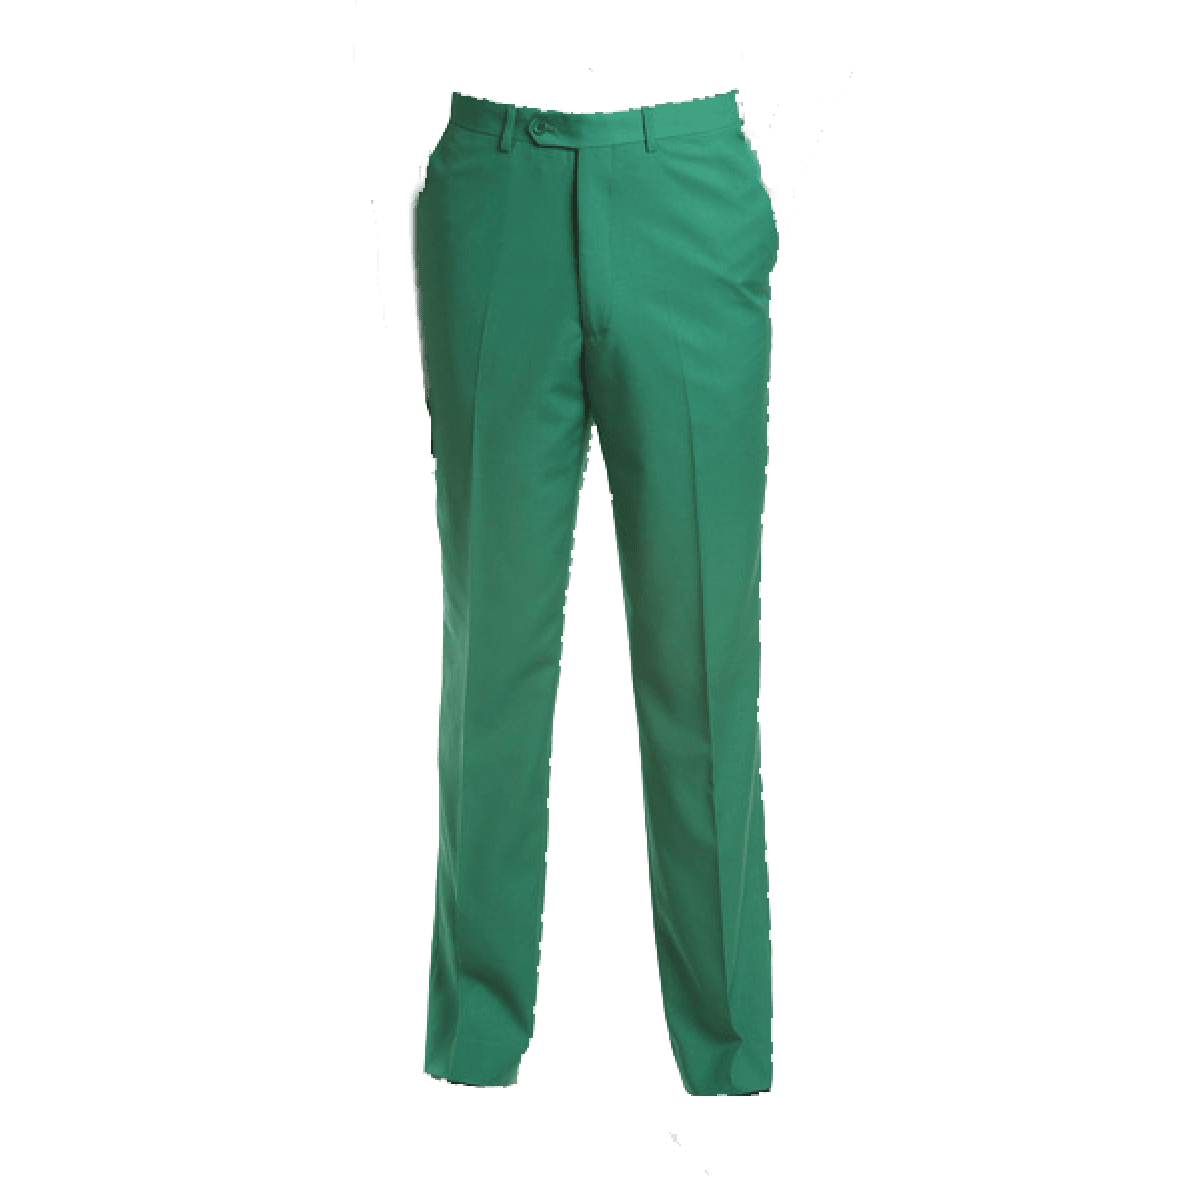 Men's Green Pants